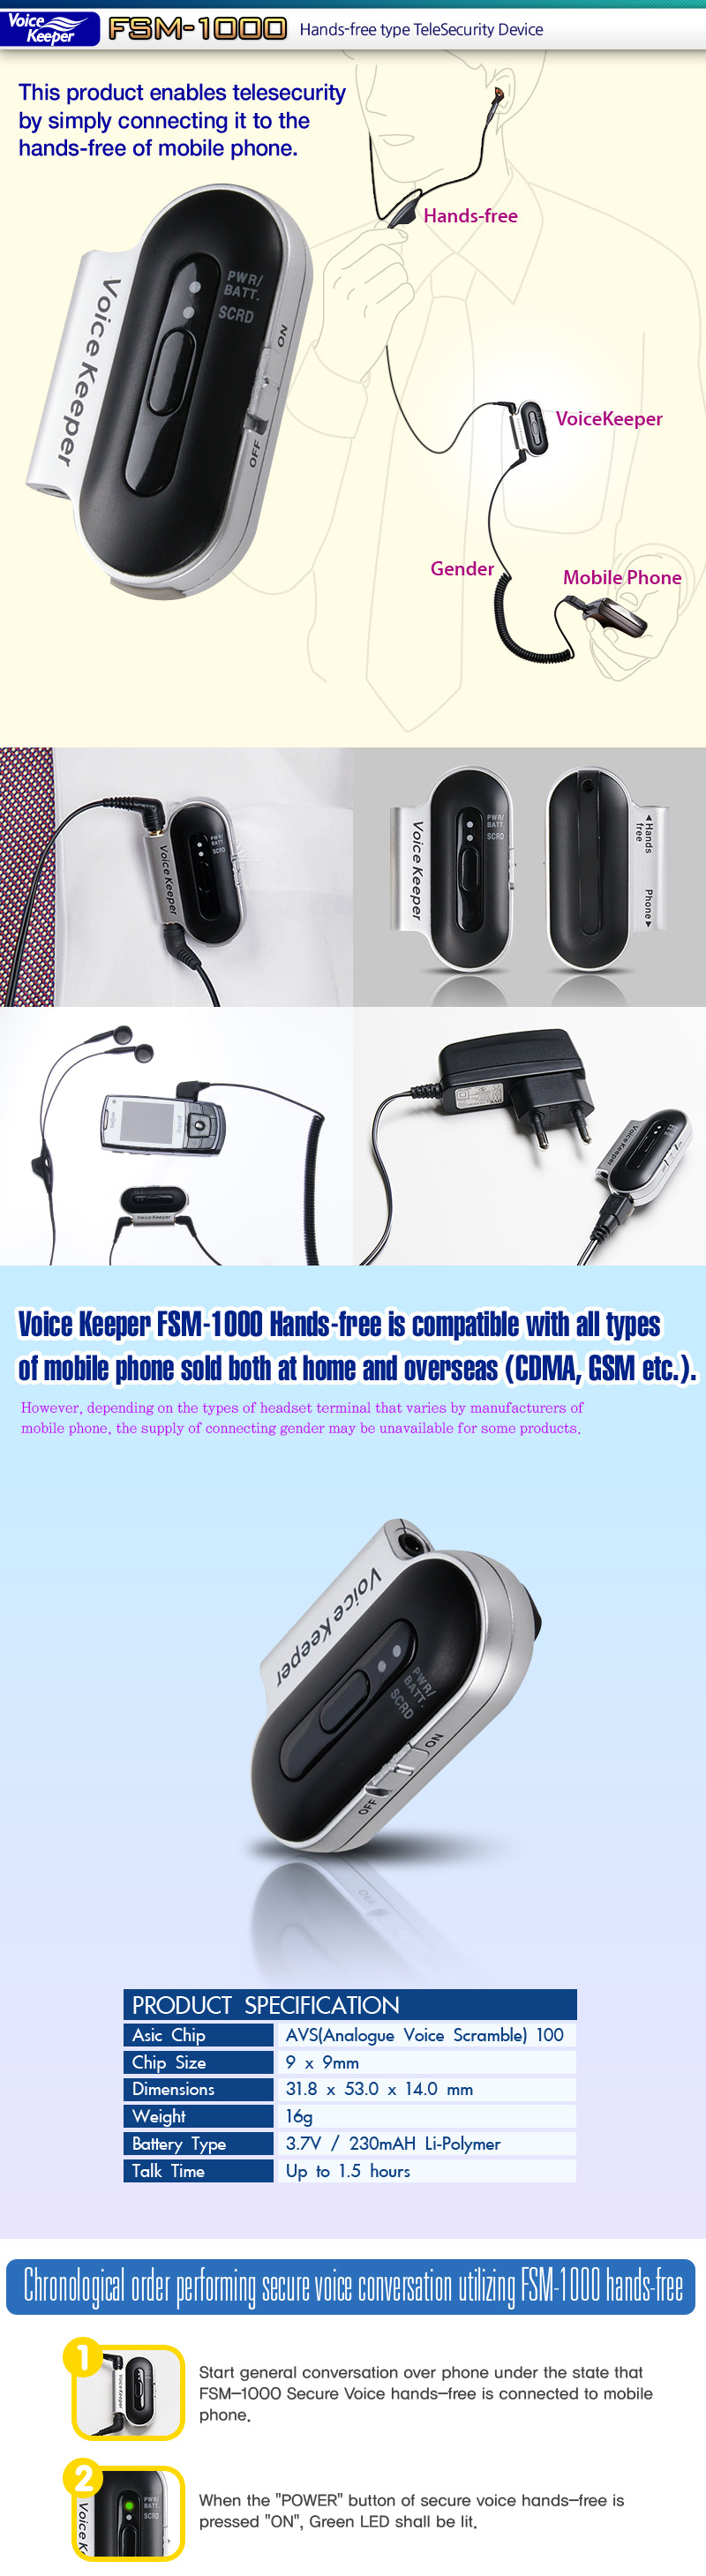 Mobile Phone Jammers, Mobile Phone Scrambler, Voice Keeper